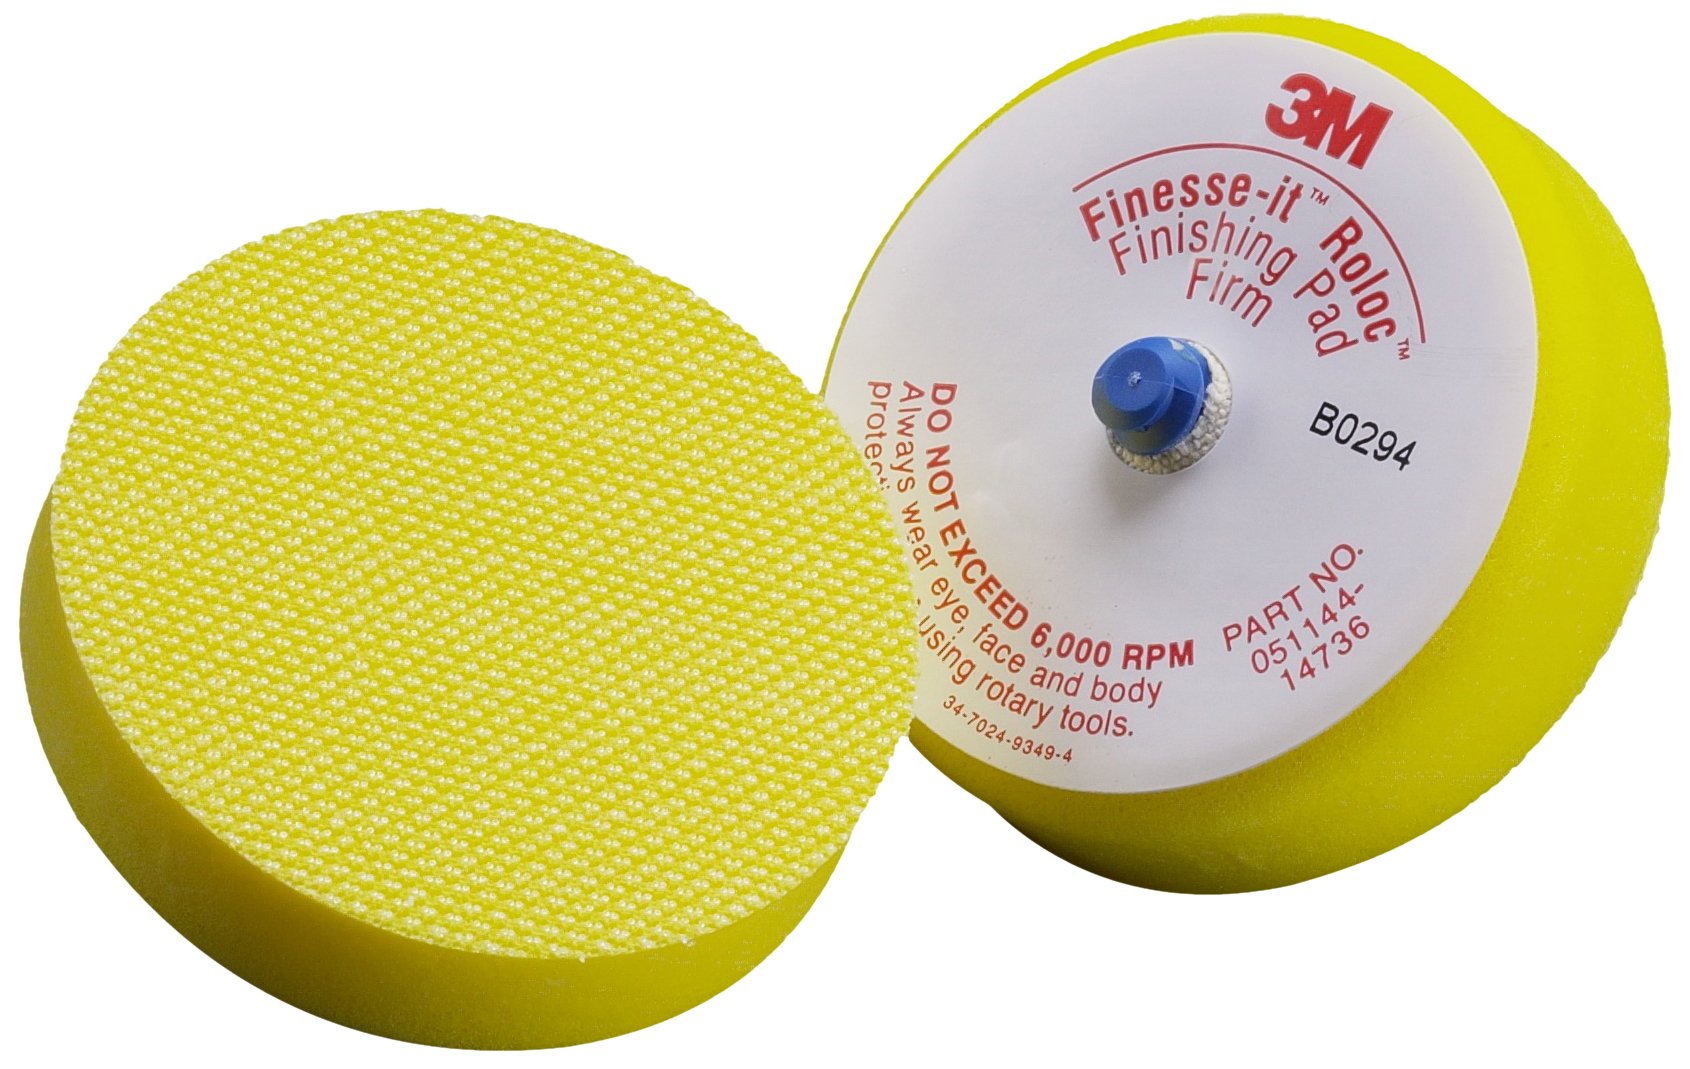 3M Finesse-it Roloc Finishing Disc Pad 14736V, Hook and Loop, 3'' Diameter x 1'' Thick, Yellow (Pack of 12) by 3M